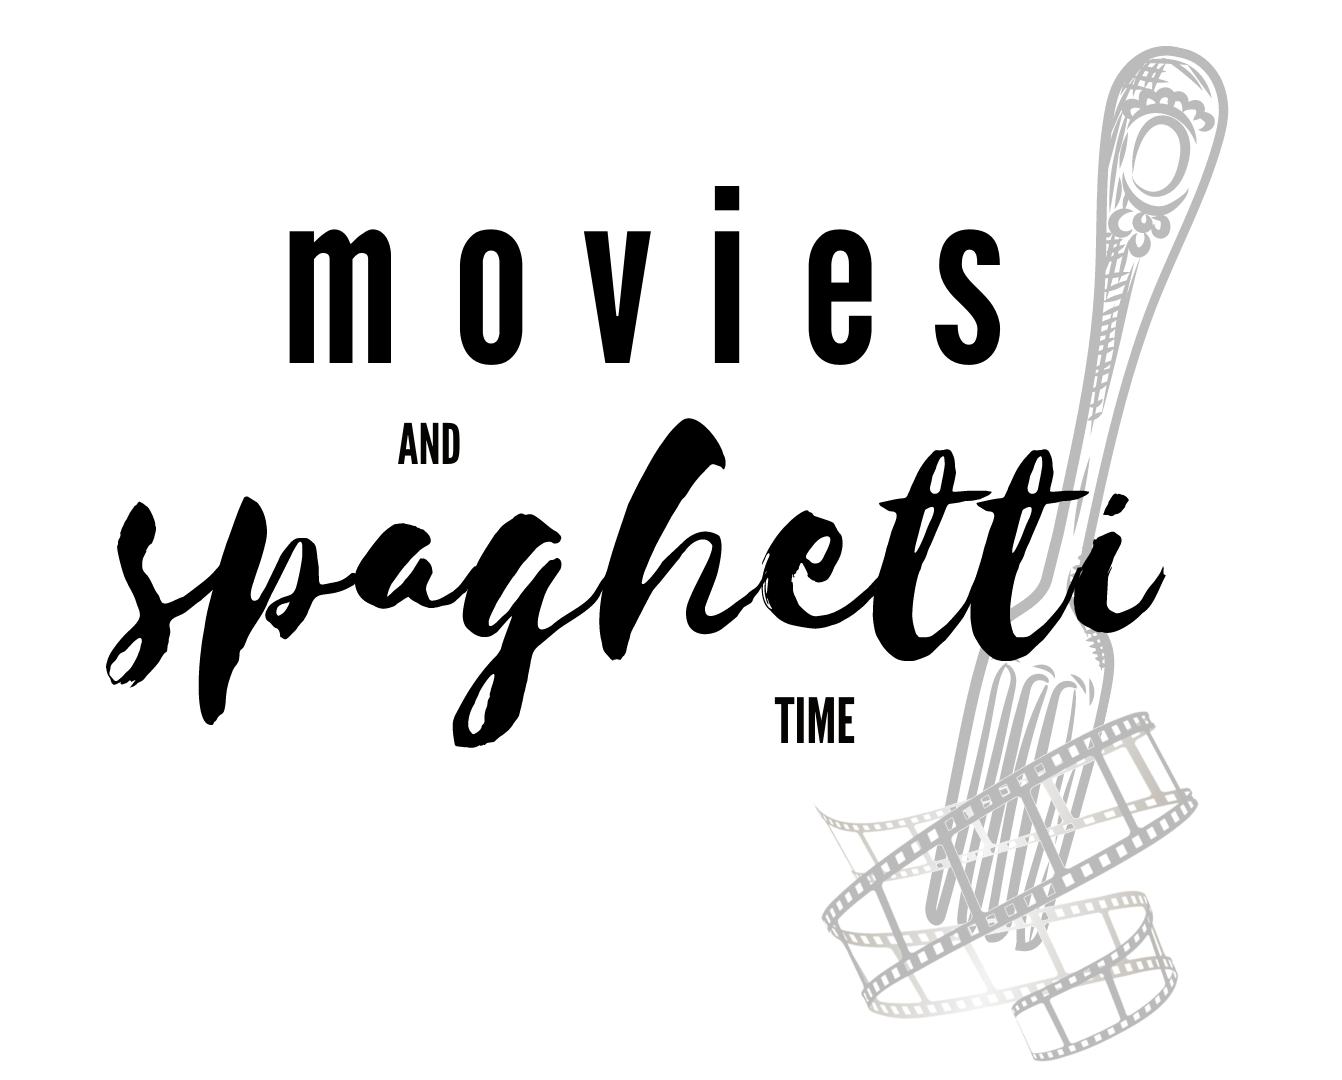 MOVIES and SPAGHETTI time